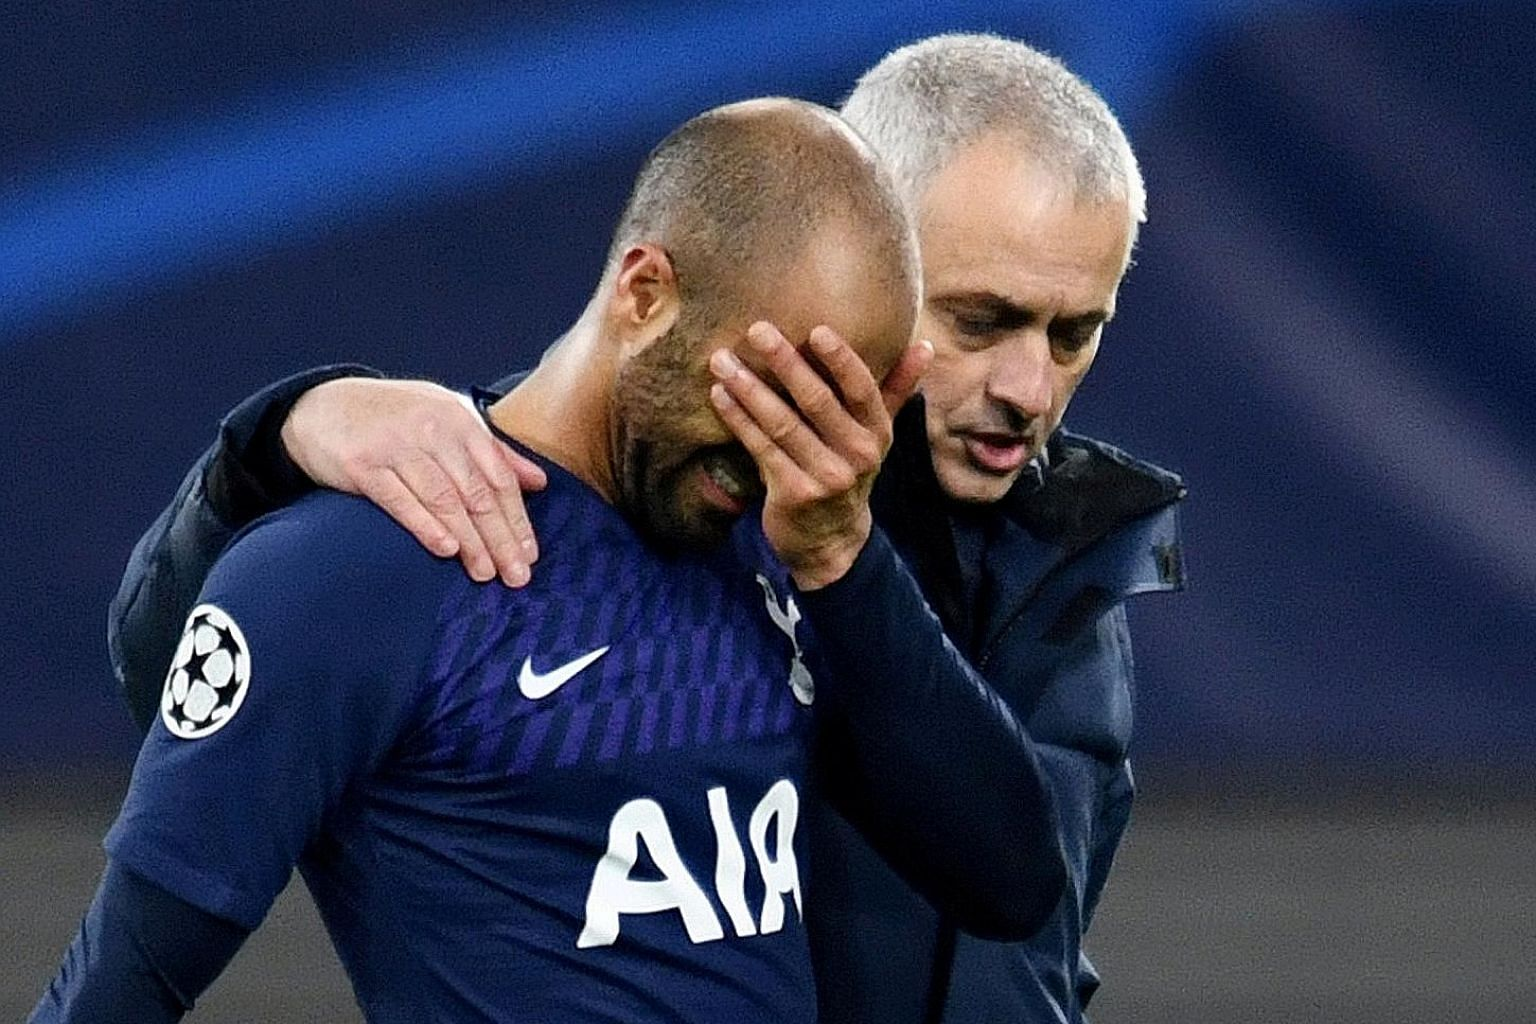 Tottenham forward Lucas Moura being comforted by his manager Jose Mourinho following their 3-0 Champions League second-leg defeat at RB Leipzig. Spurs, who were missing key players like Harry Kane, Son Heung-min and Davinson Sanchez owing to injury,